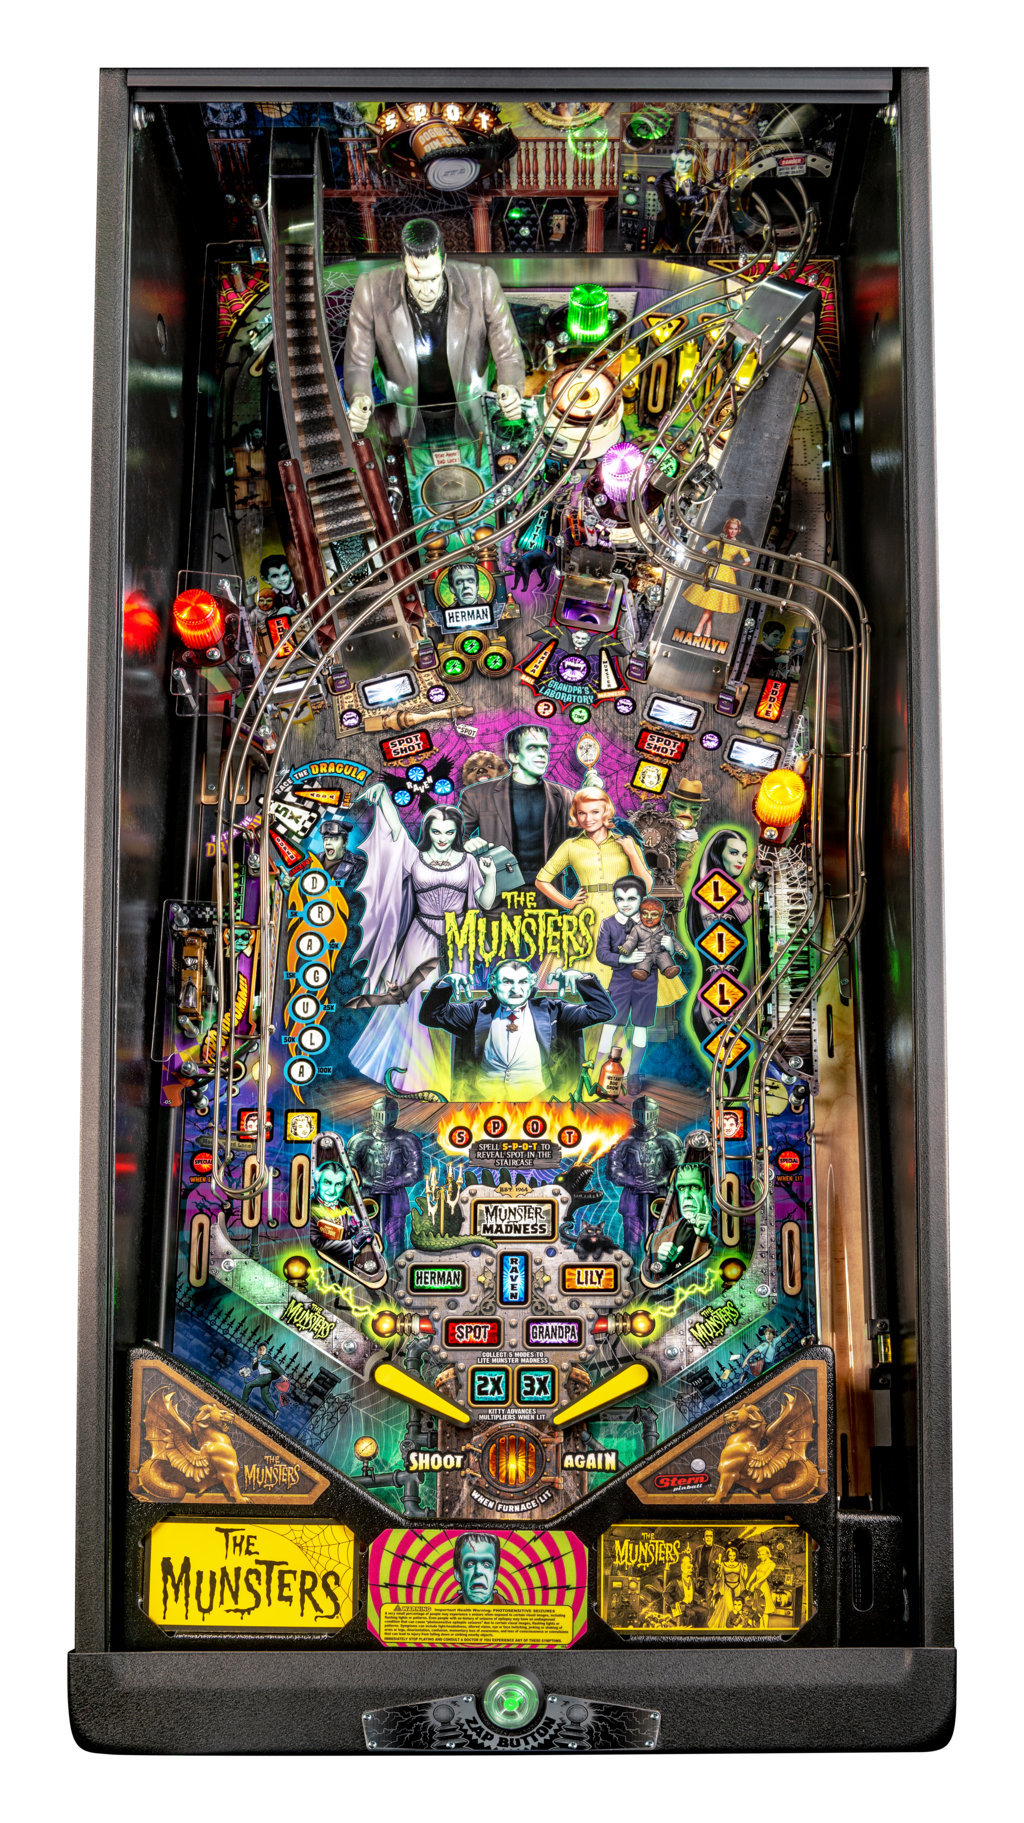 Munsters Pro Playfield mini